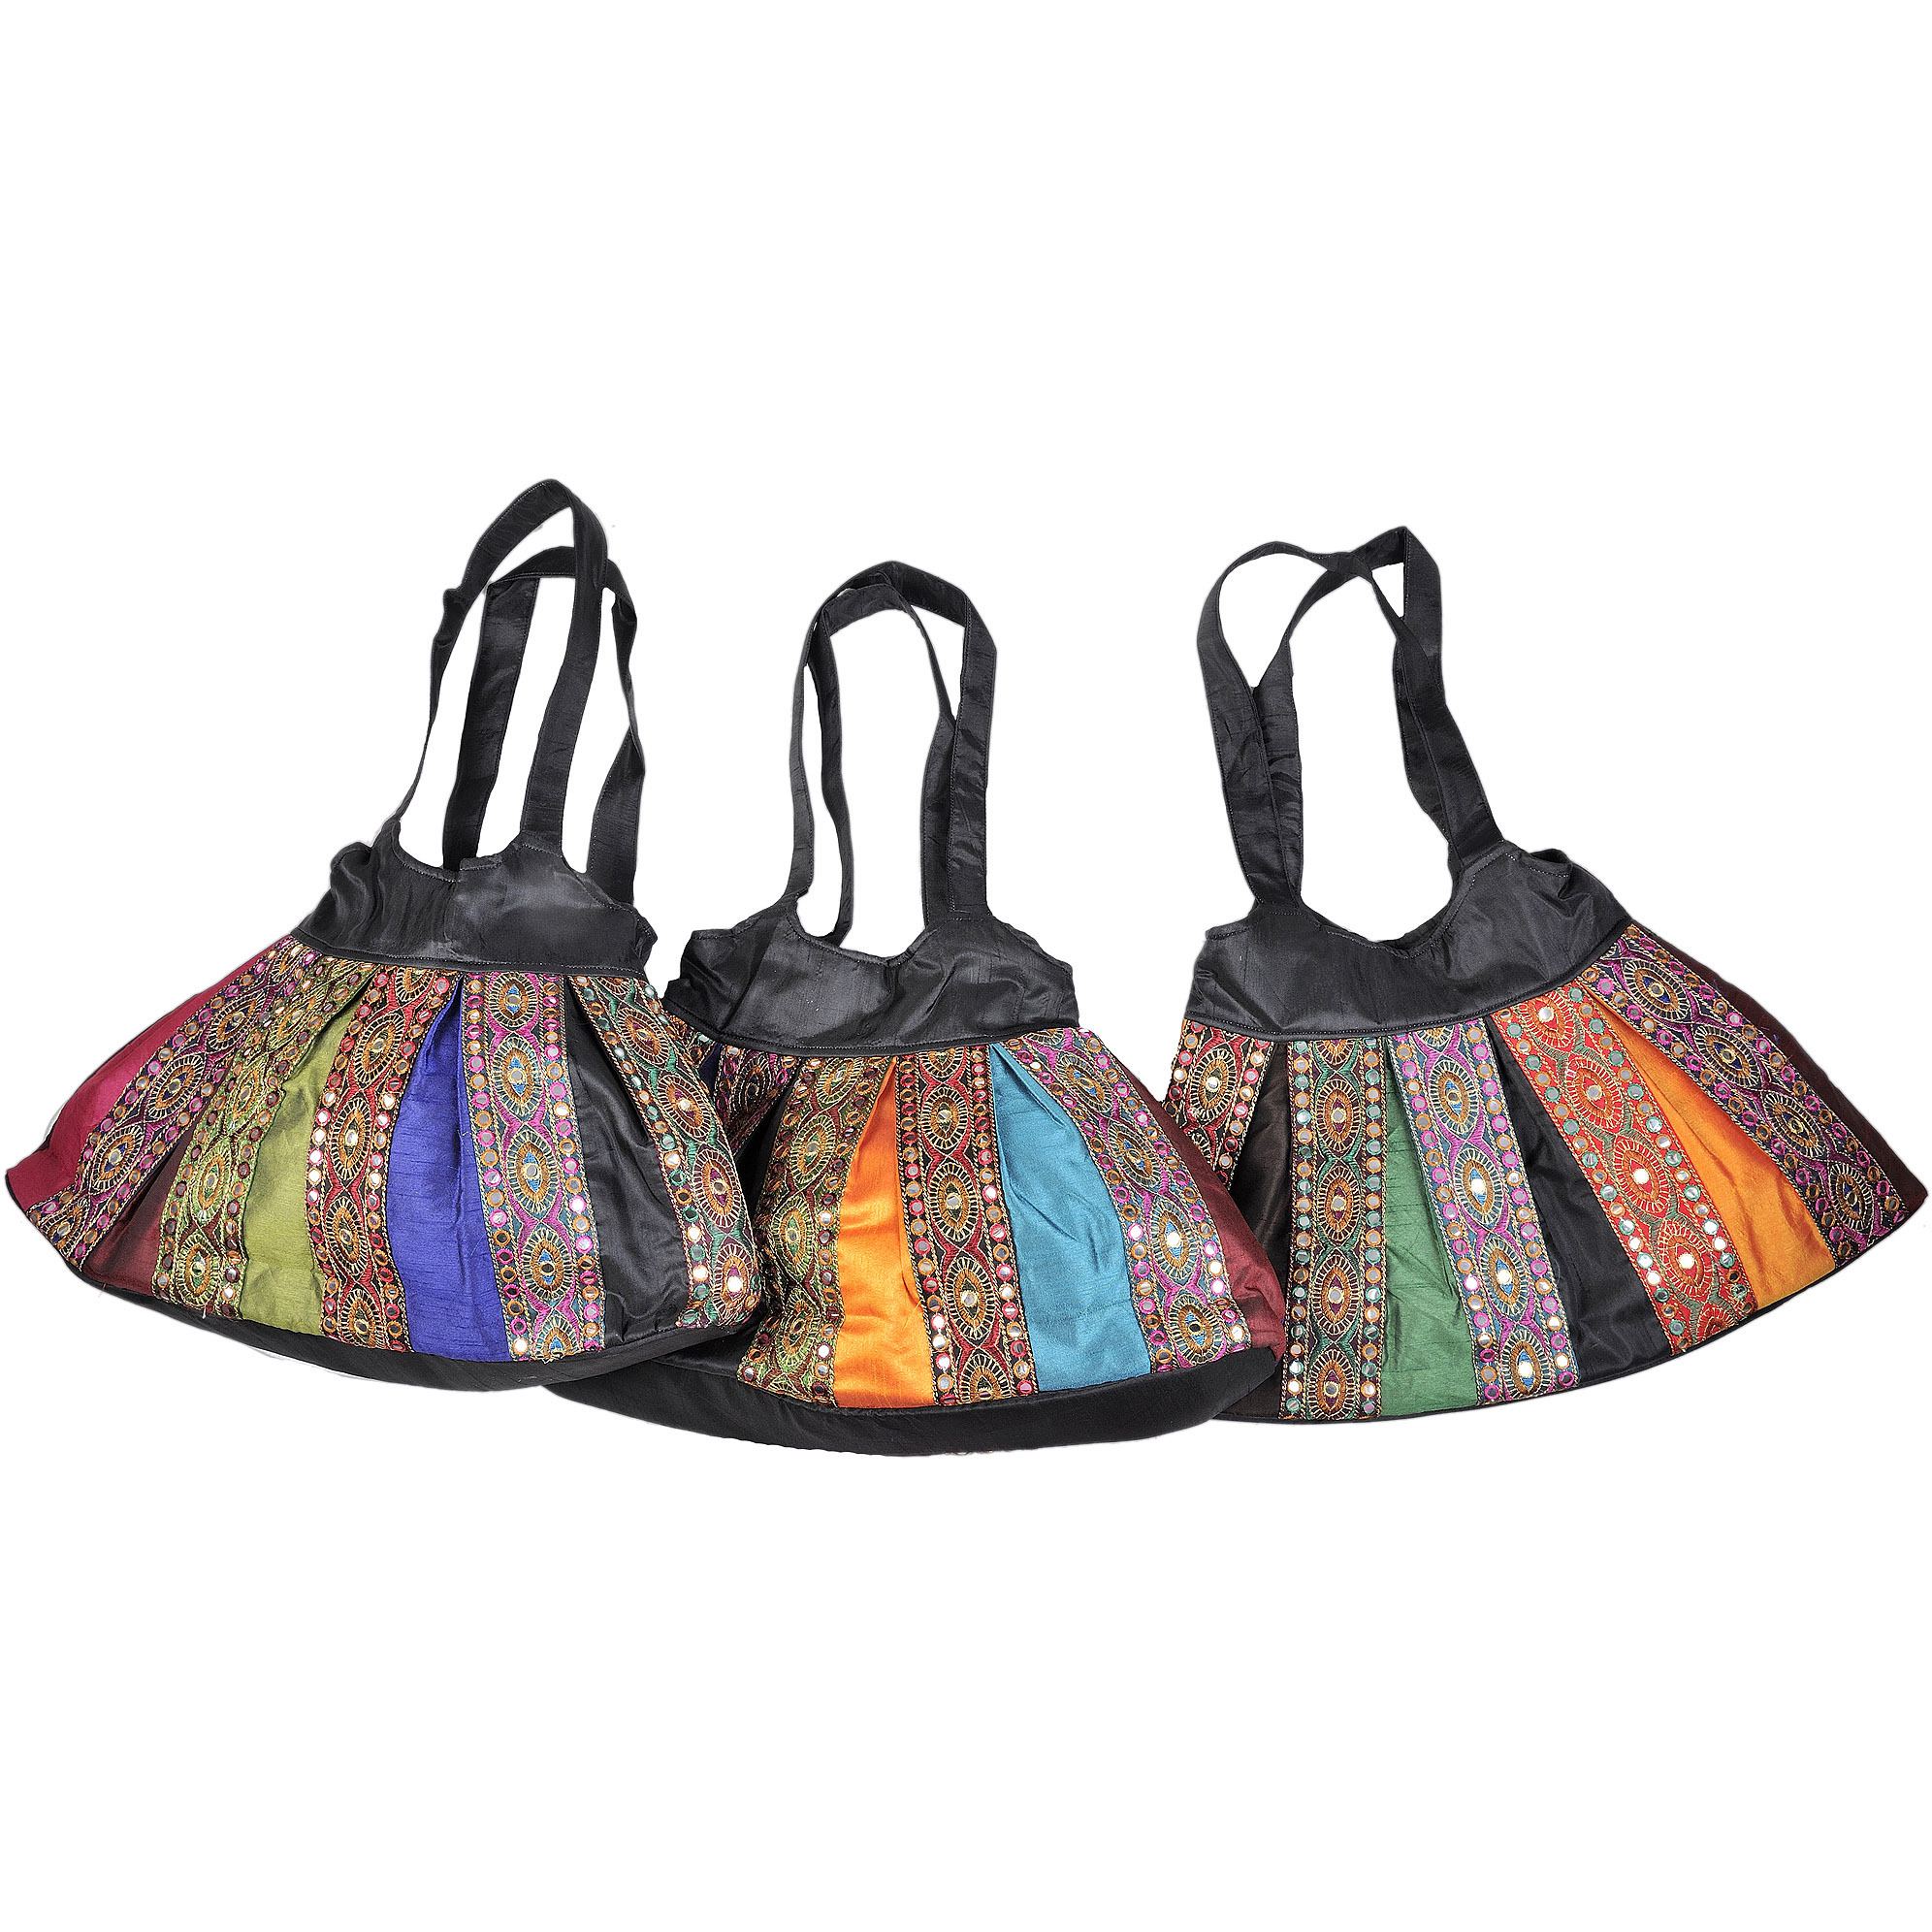 Lot of Three Shopper Bags from Gujarat with Embroidery and Patch Border